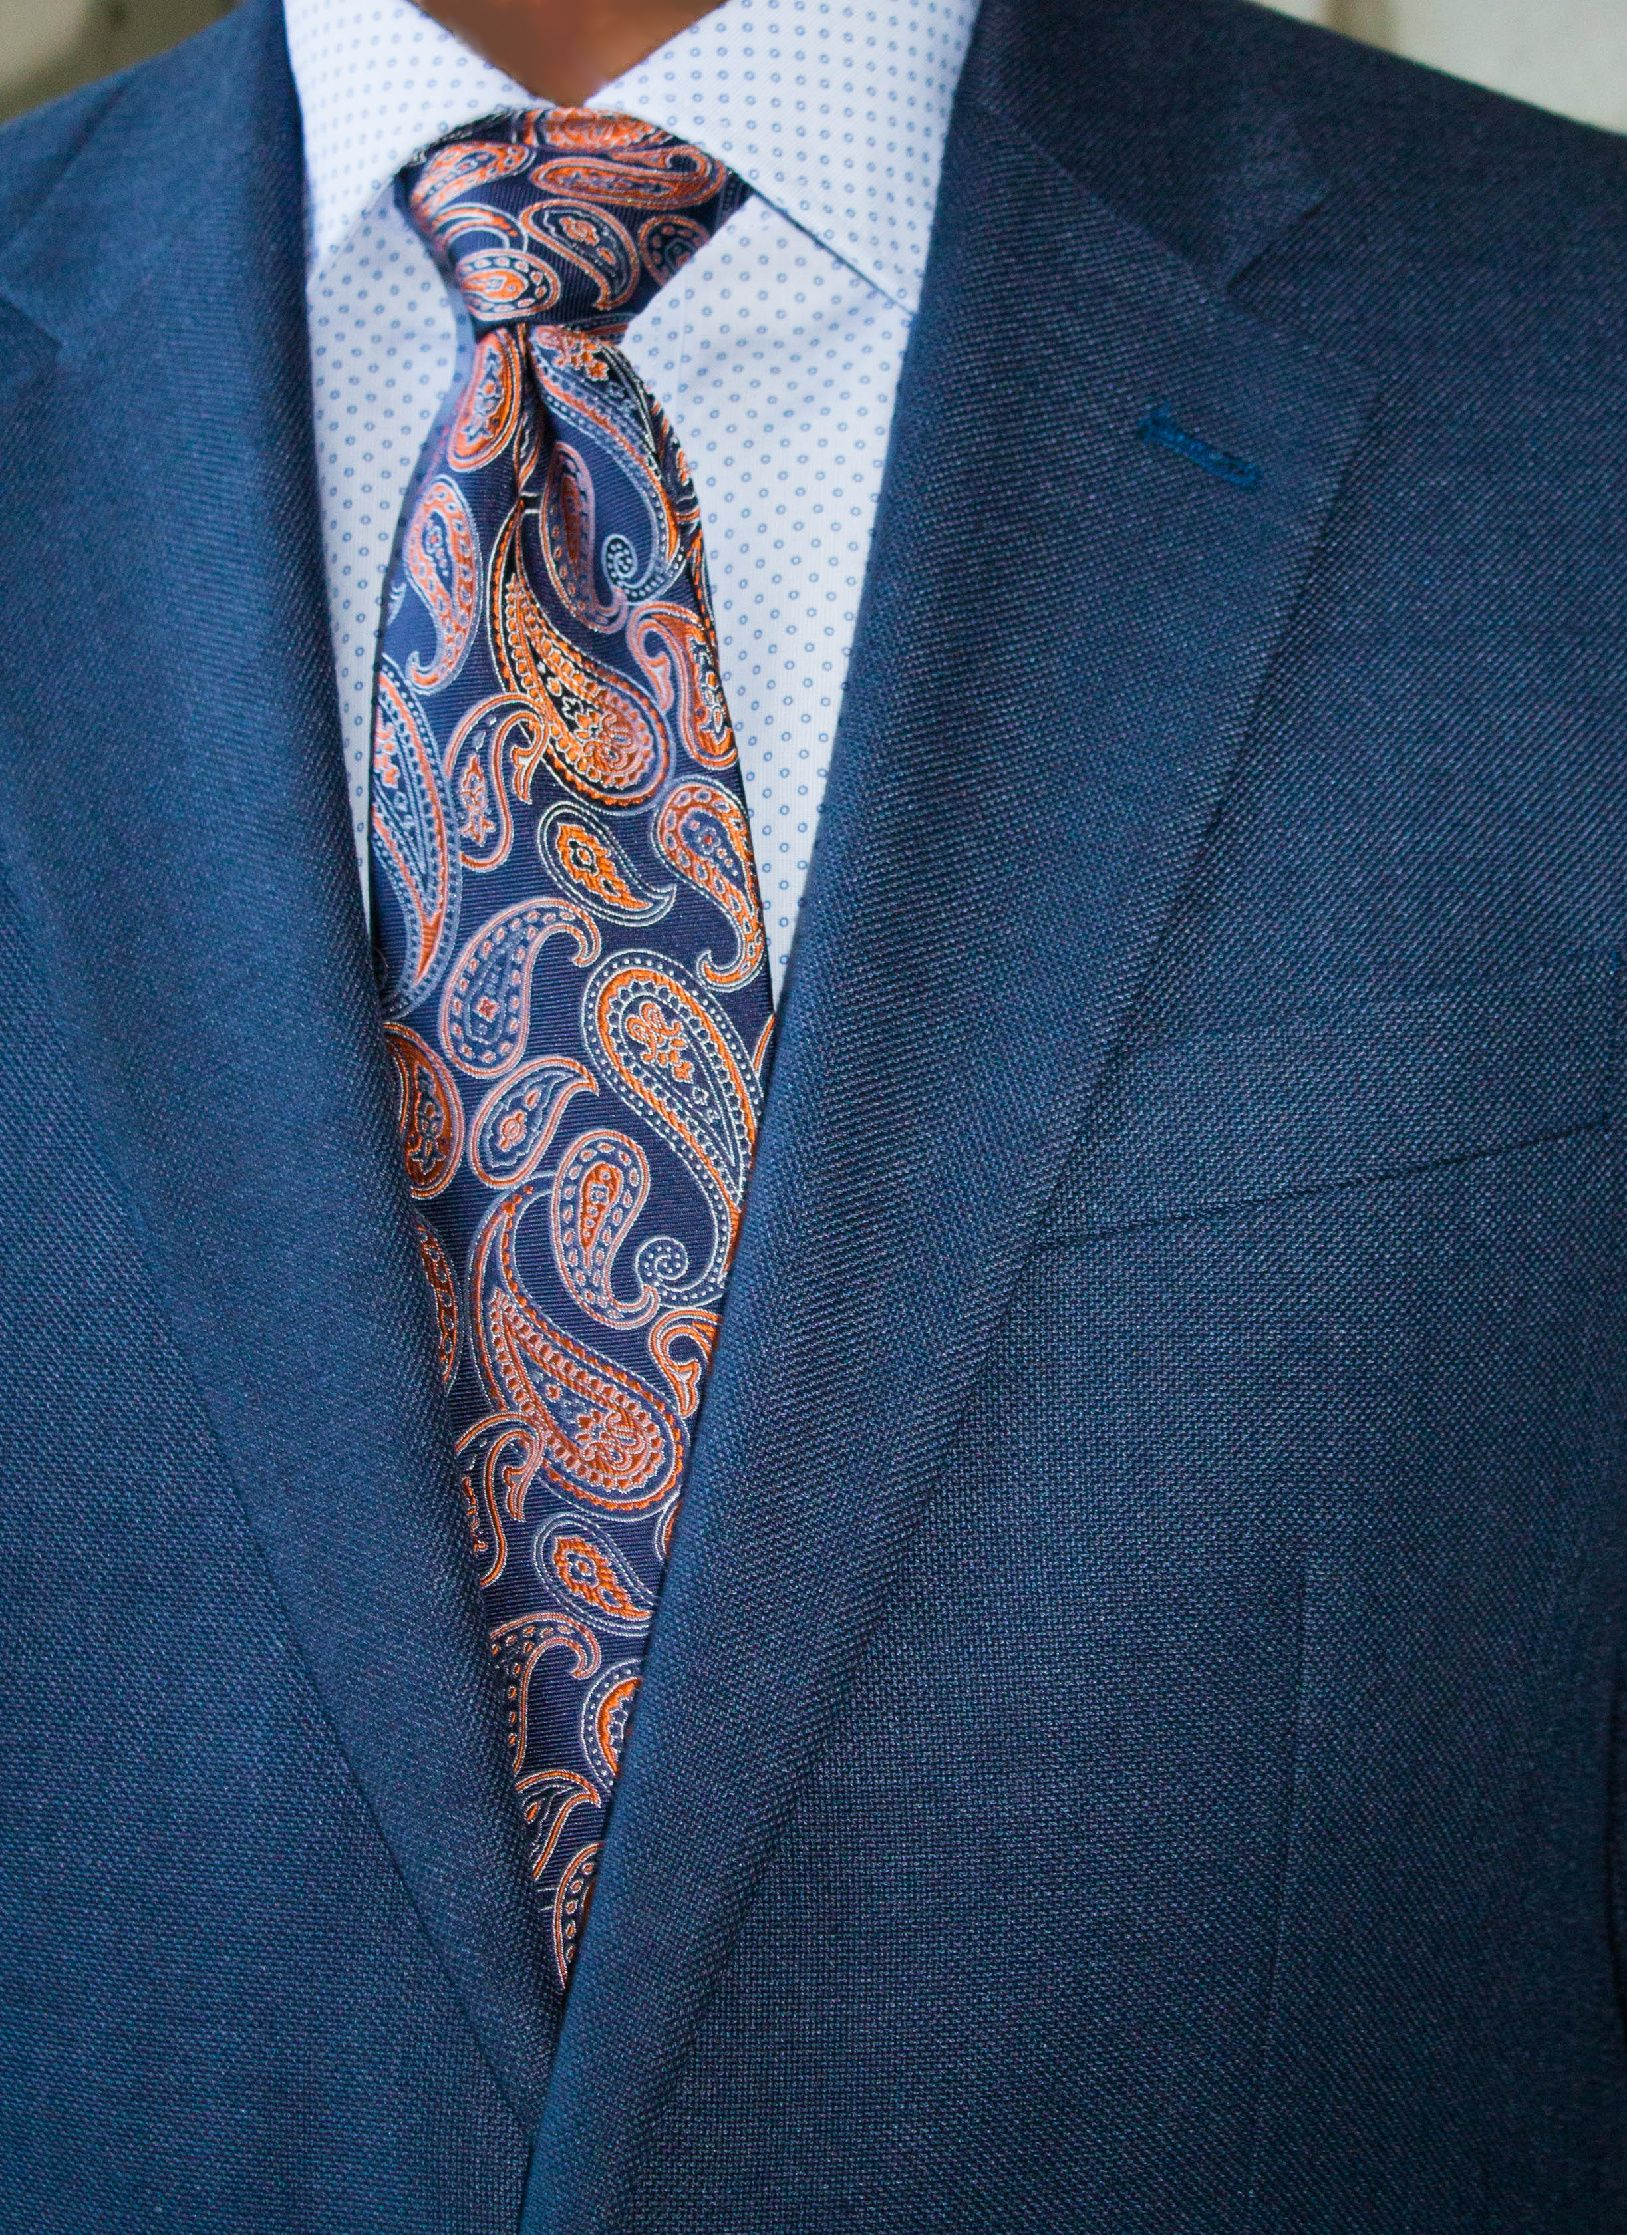 847dd3fcb men's suits for weddings. Navy suit with paisley tie. The subtle polka dots  in this shirt pairs nicely with the tie.